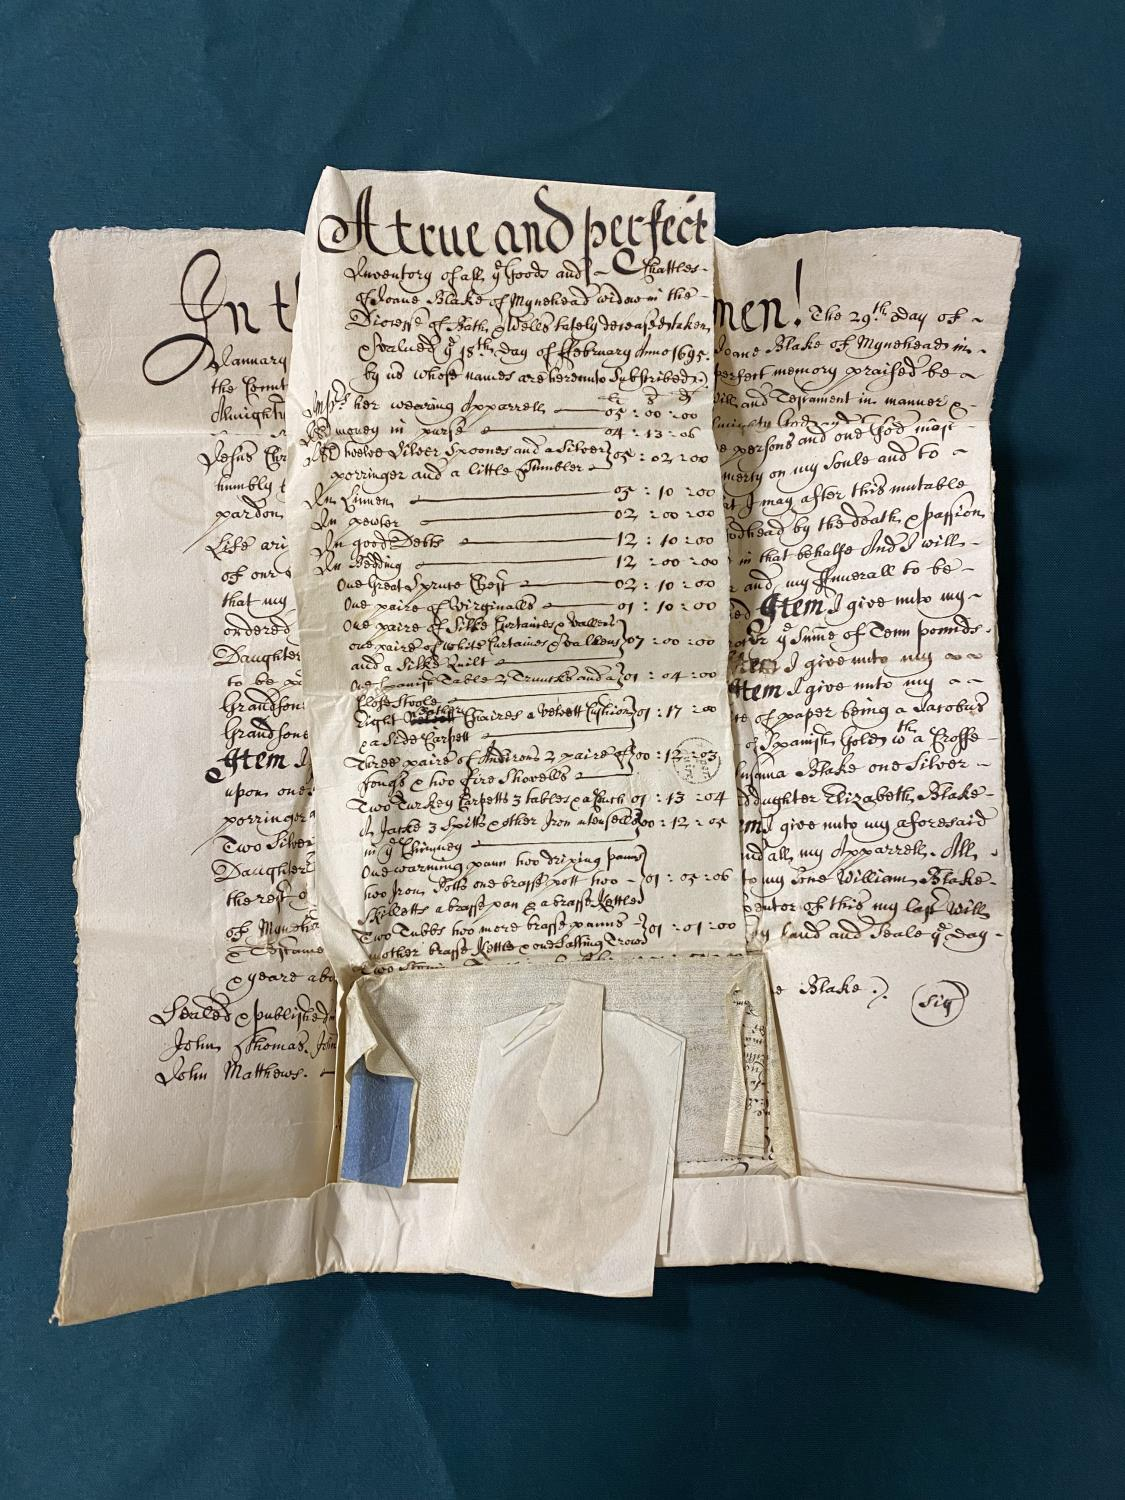 Will and Inventory. A late 17th century manuscript will and inventory for Joan Blake of Minehead,